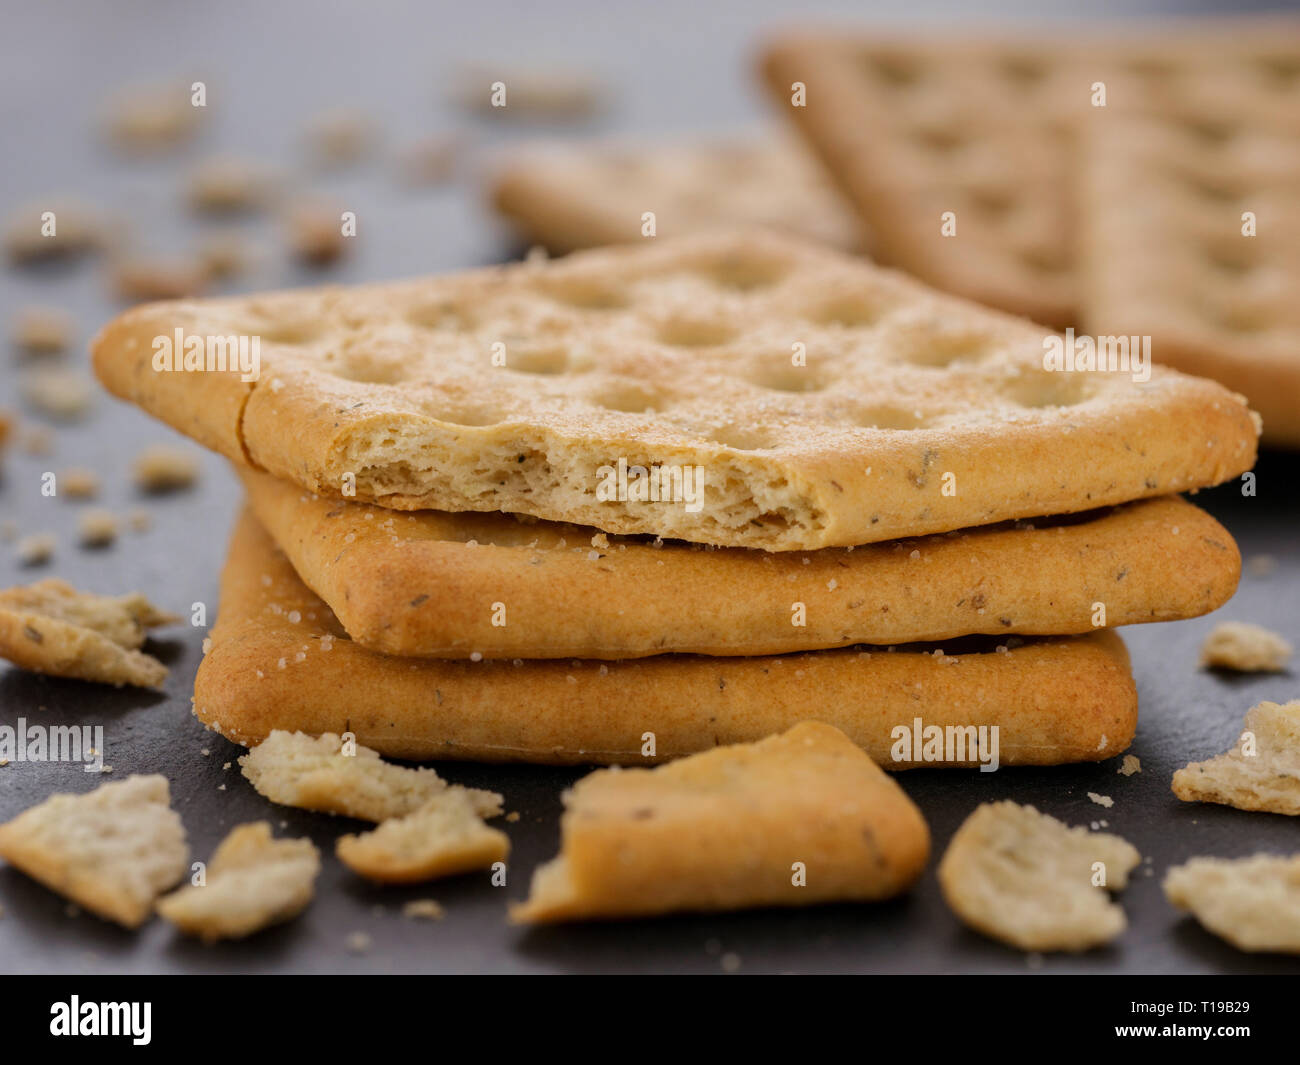 stack of square crackers with pieces and crumbs on slate gray background. Dry salt cracker cookies with fiber and dry spices - Stock Image